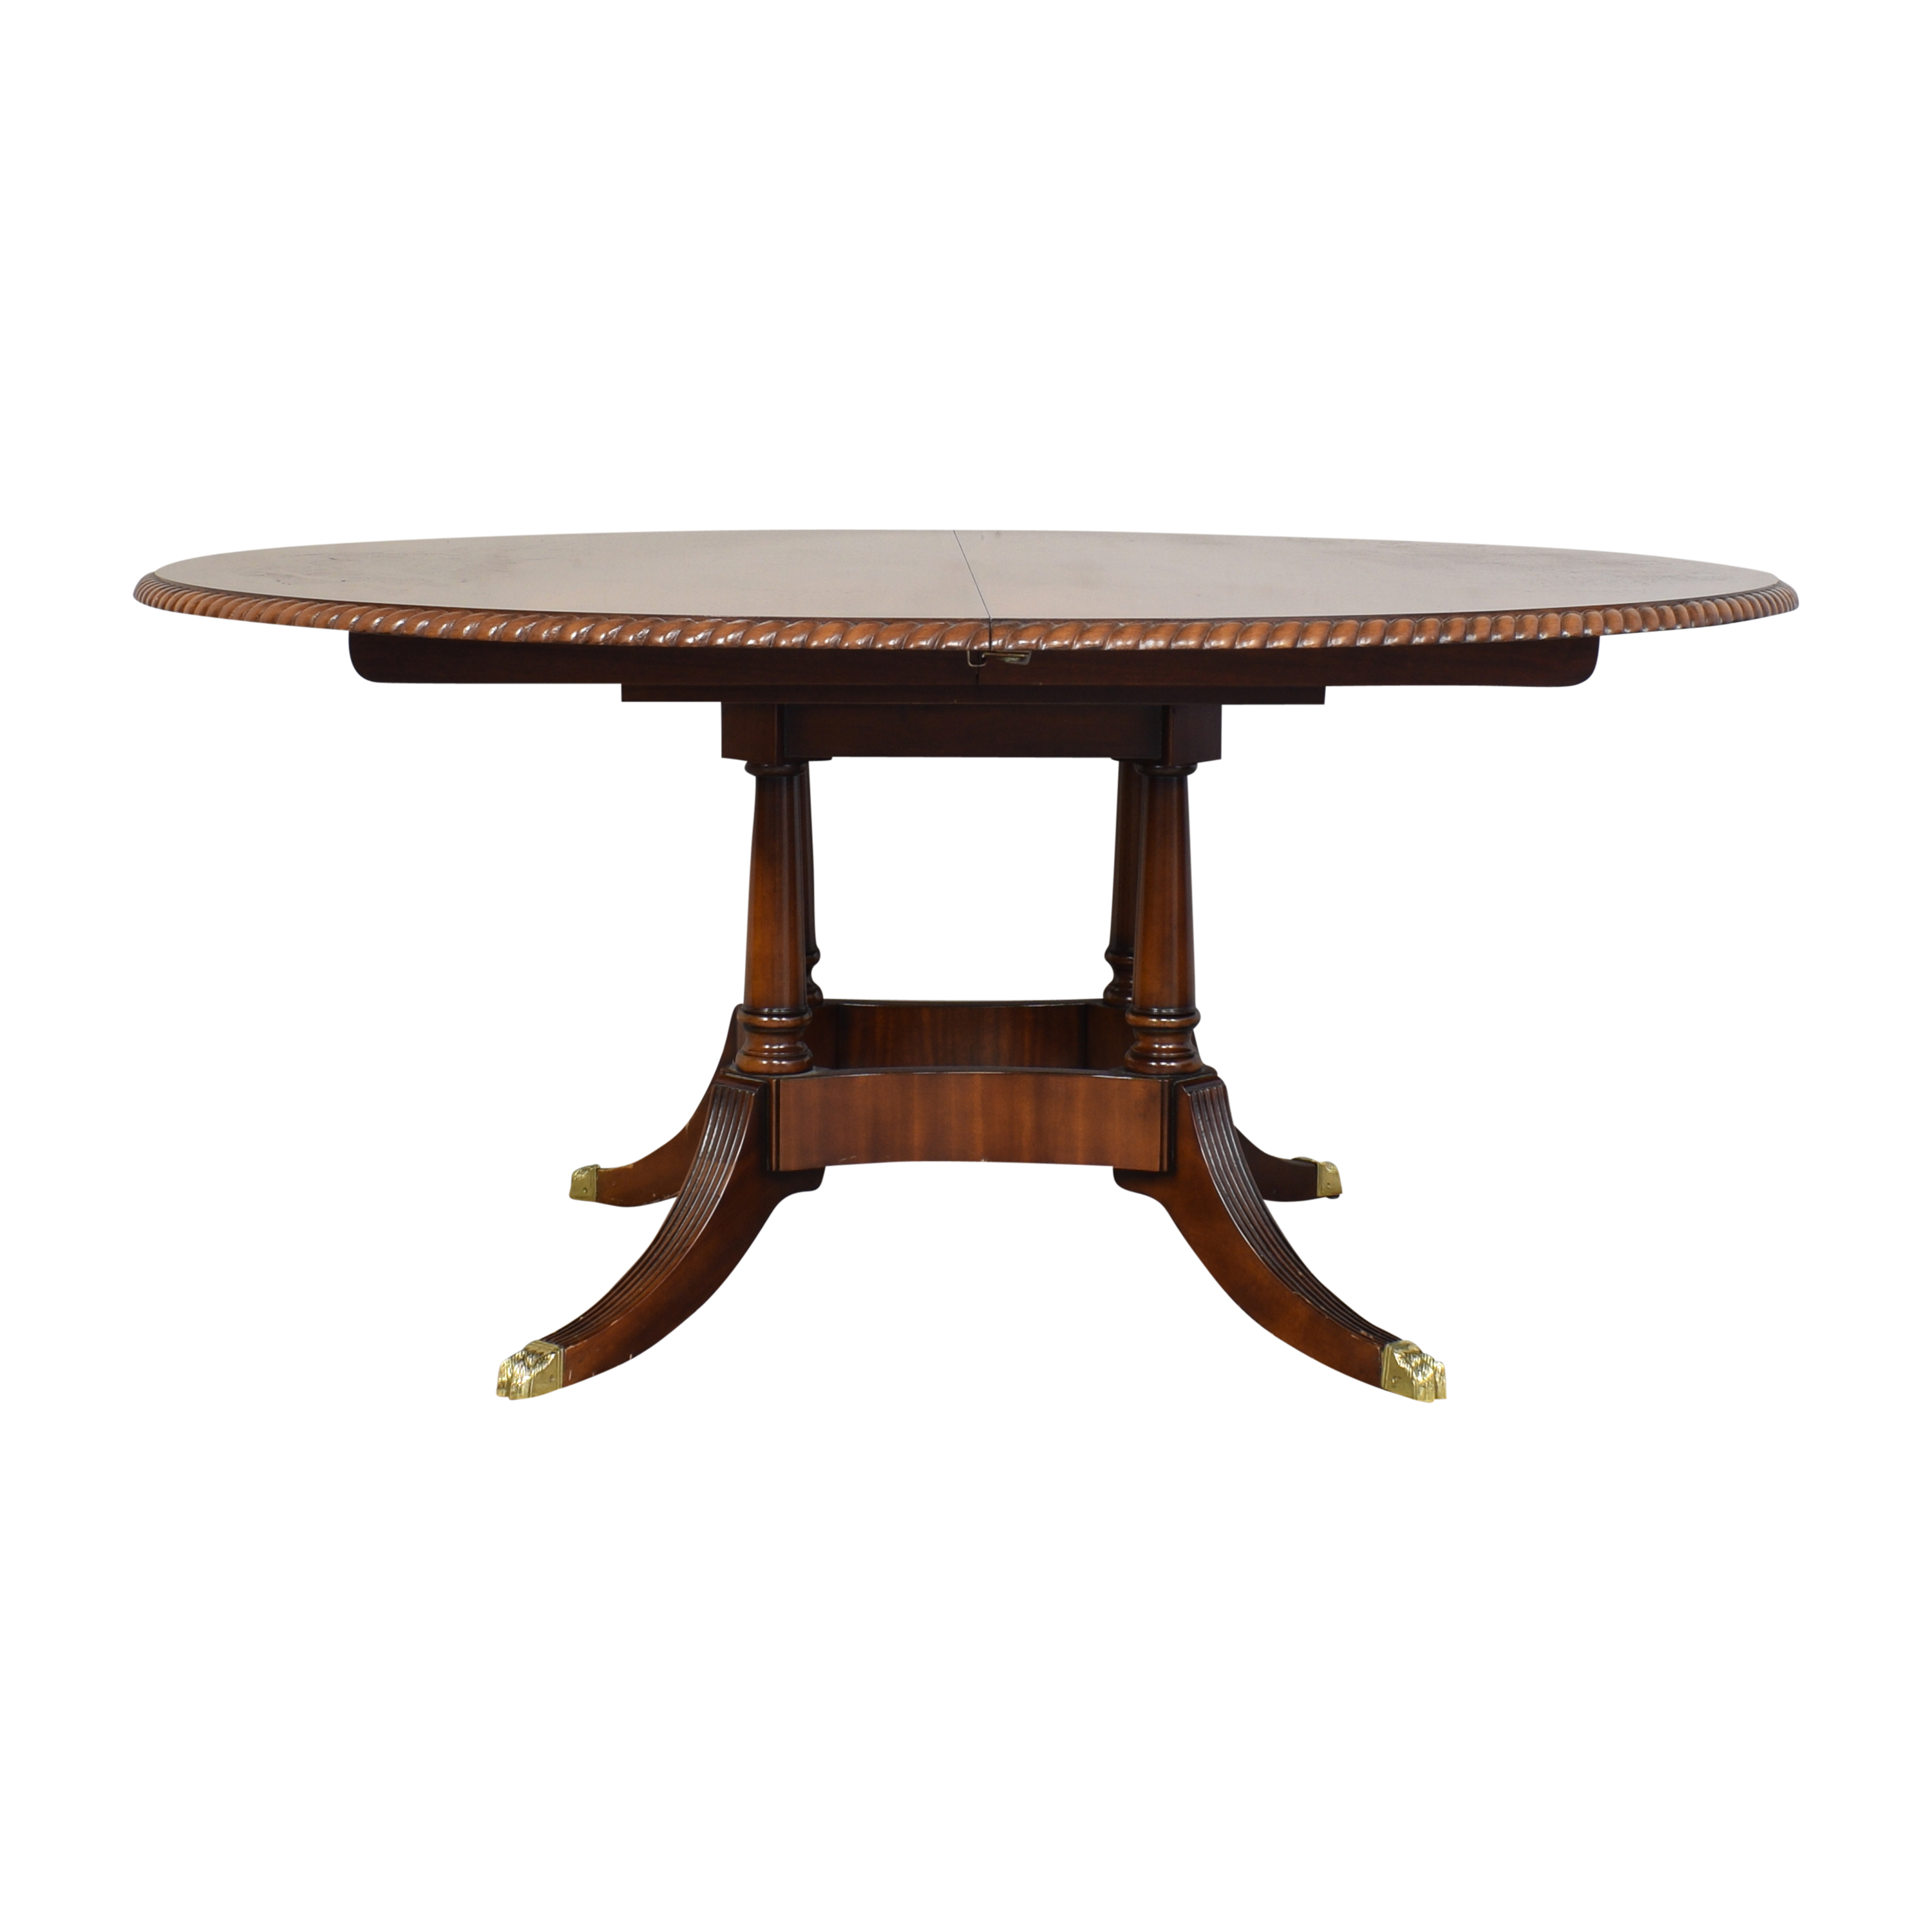 Walter of Wabash Walter of Wabash Extendable Dining Table dimensions